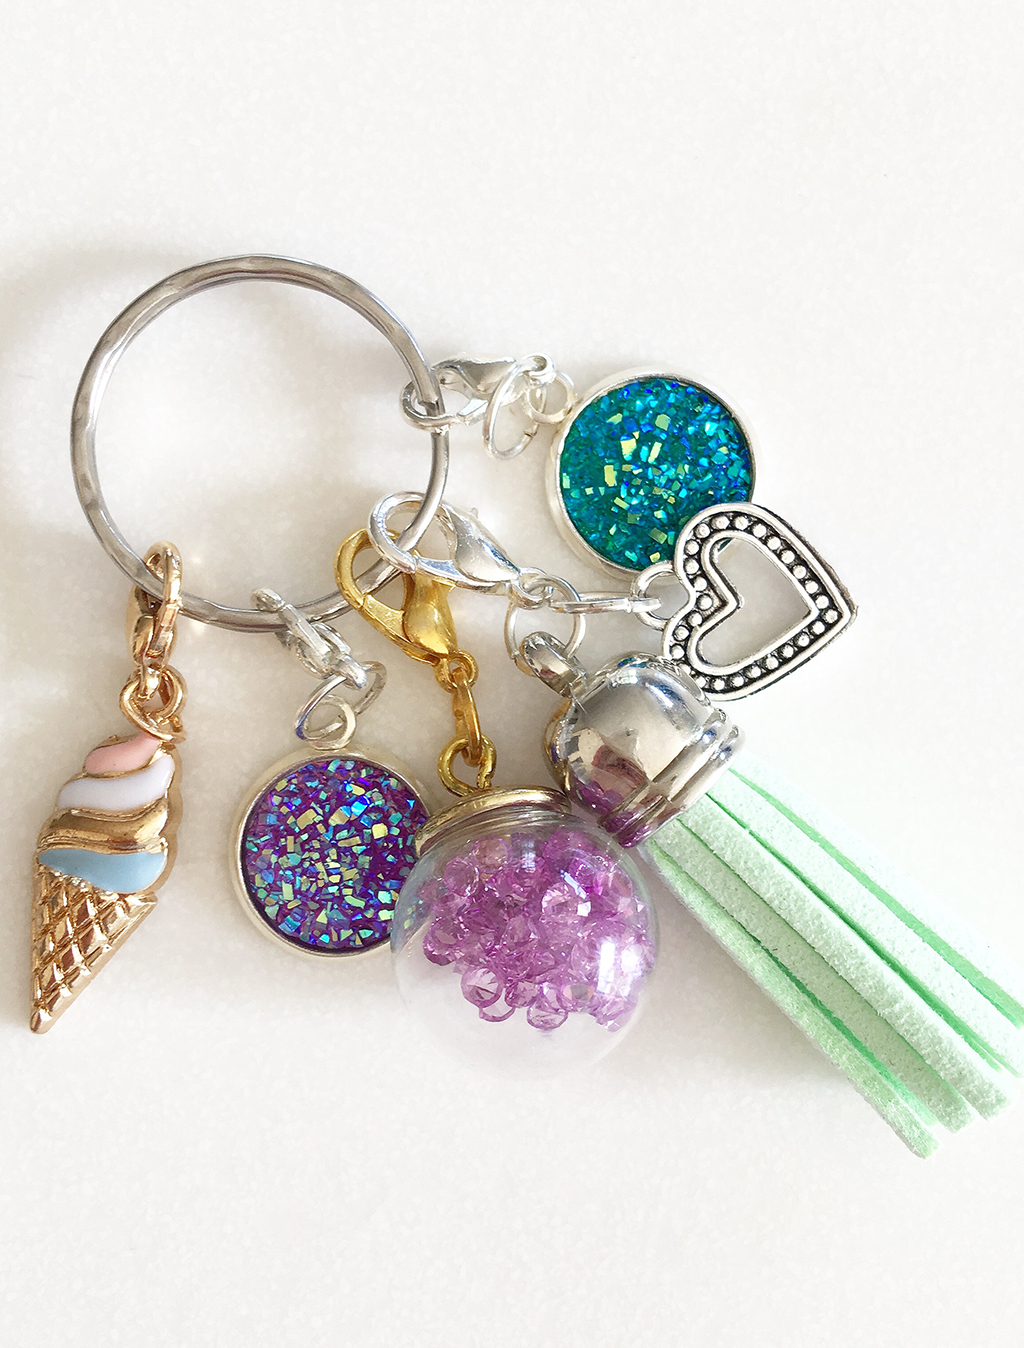 Plan Addict Planner charms on keyring